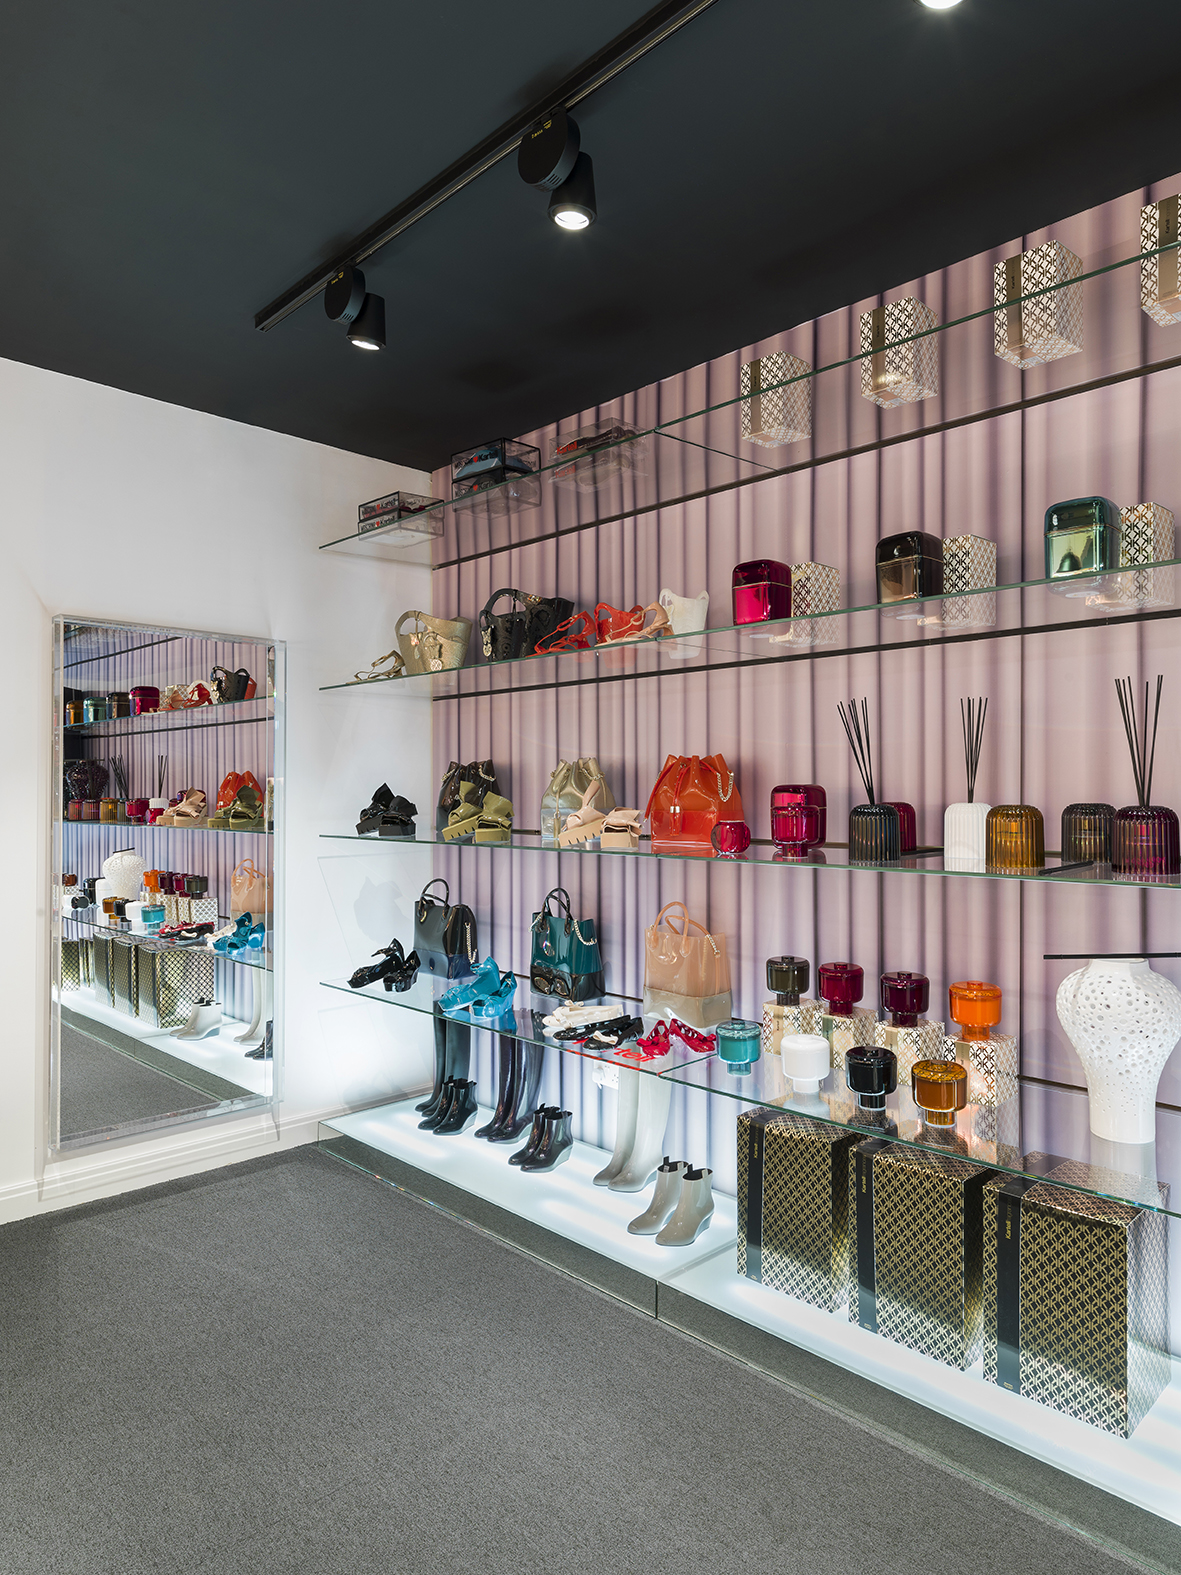 23_Kartell London Flagship Store_By Andrew Meredith.jpg